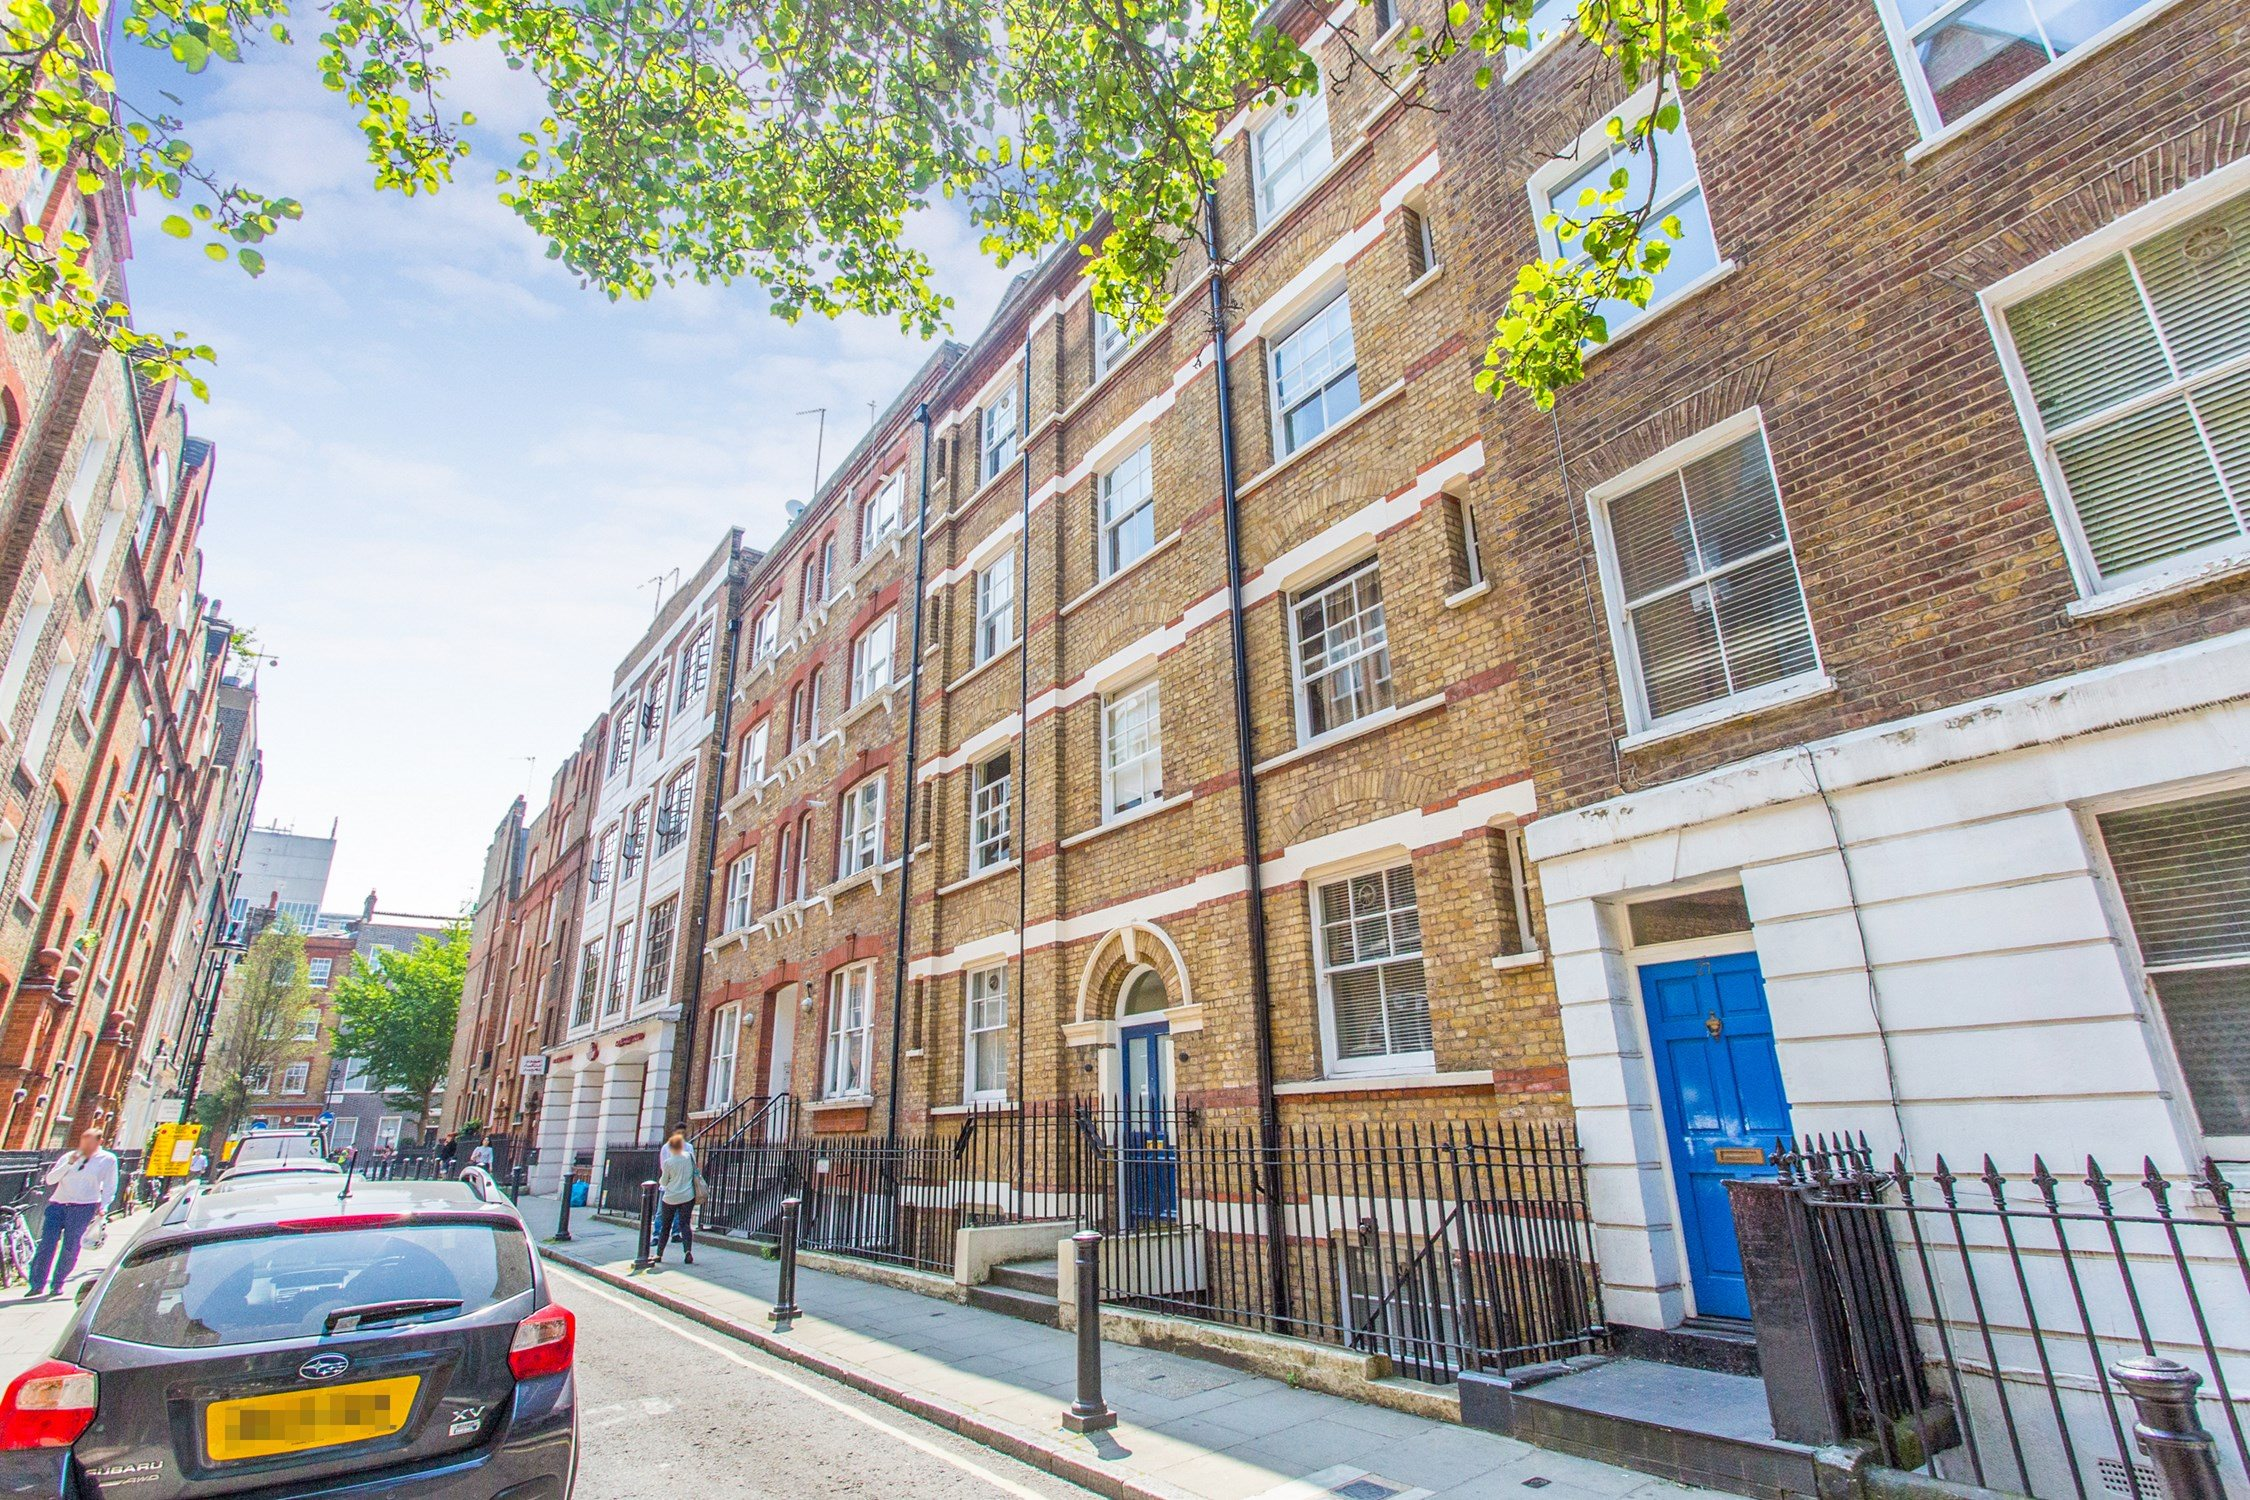 Portico Studio Flat Recently Let In Marylebone Gosfield